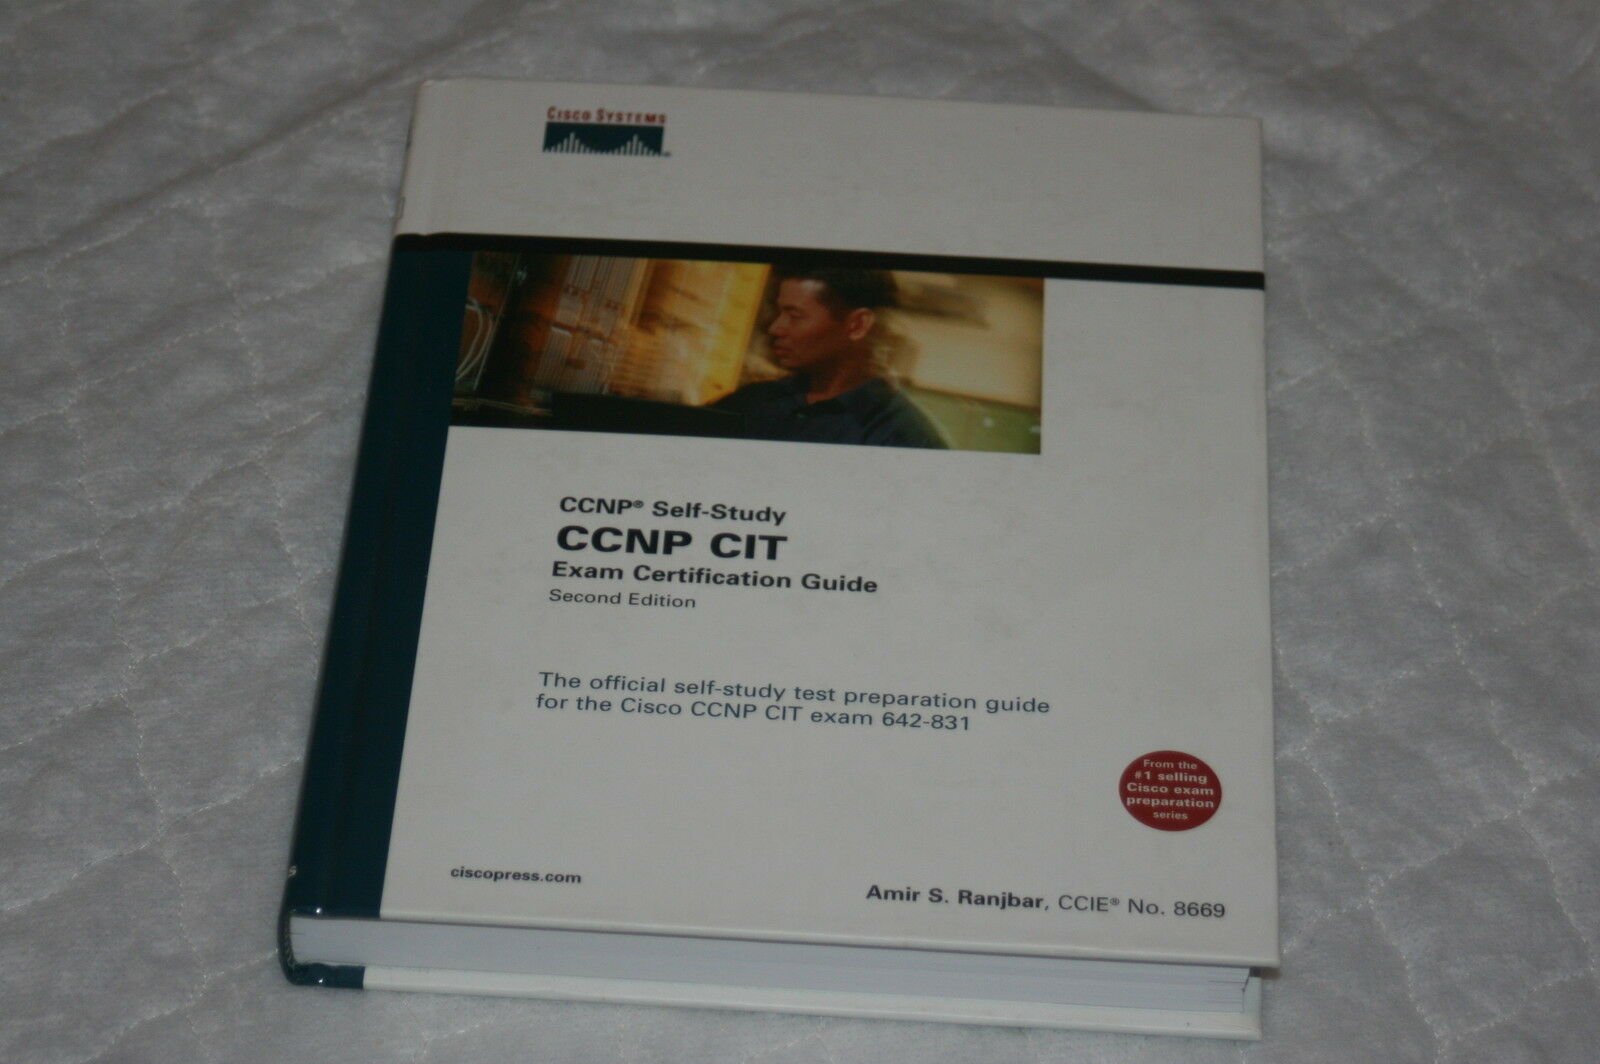 Exam Certification Guide Ccnp Cit Exam Certification Guide Ccnp